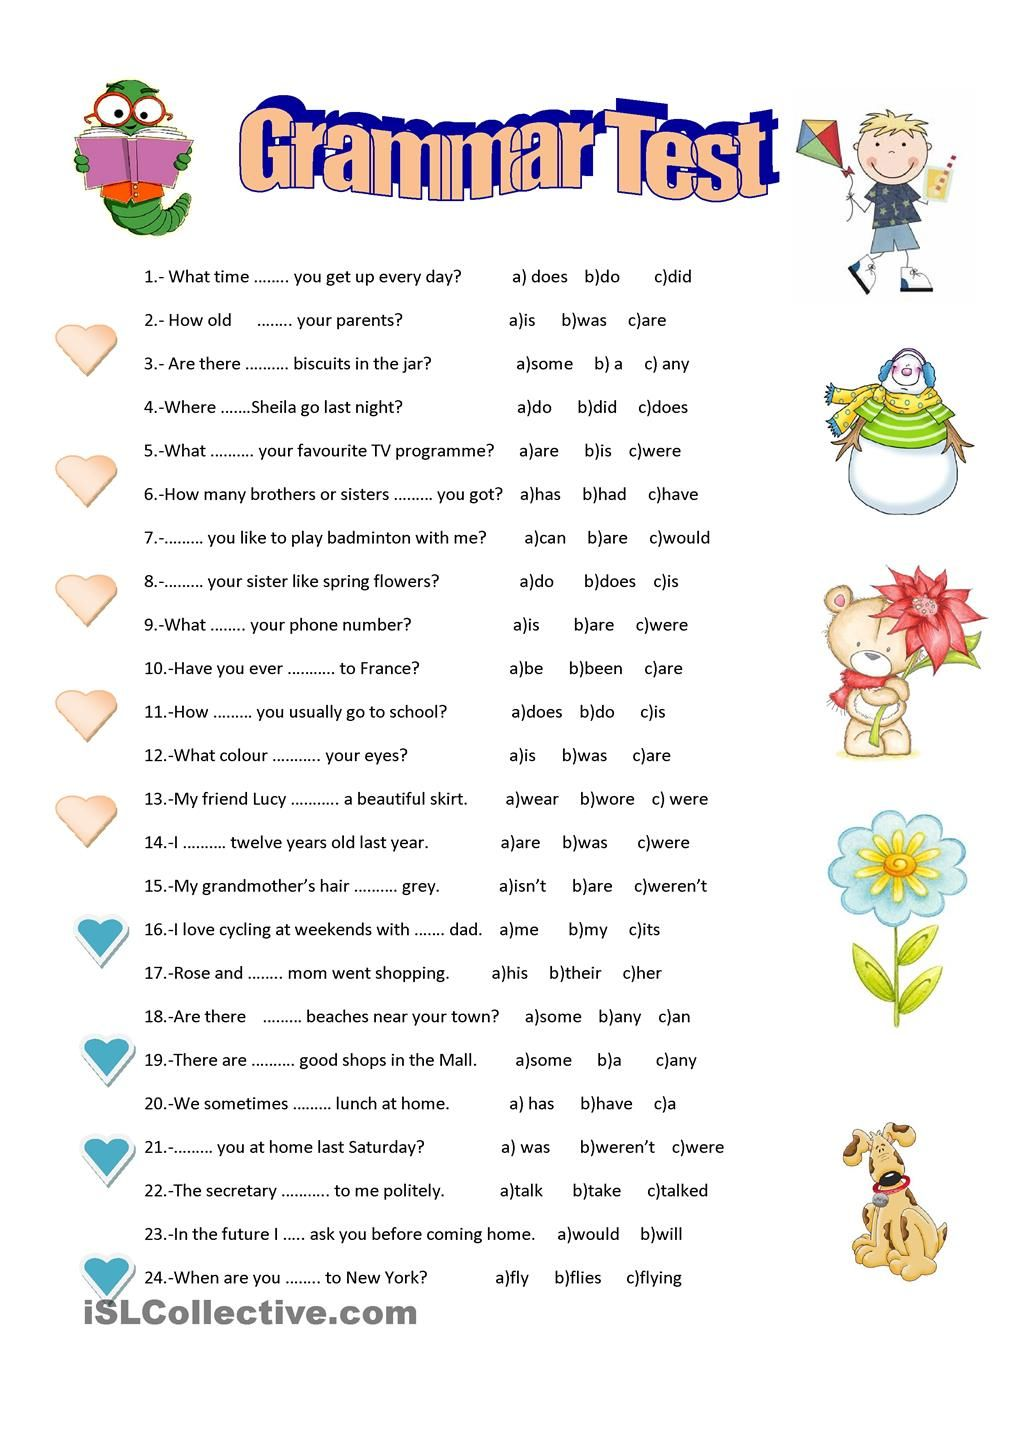 worksheet Elementary Grammar Worksheets grammar test enkku pinterest english worksheets and test